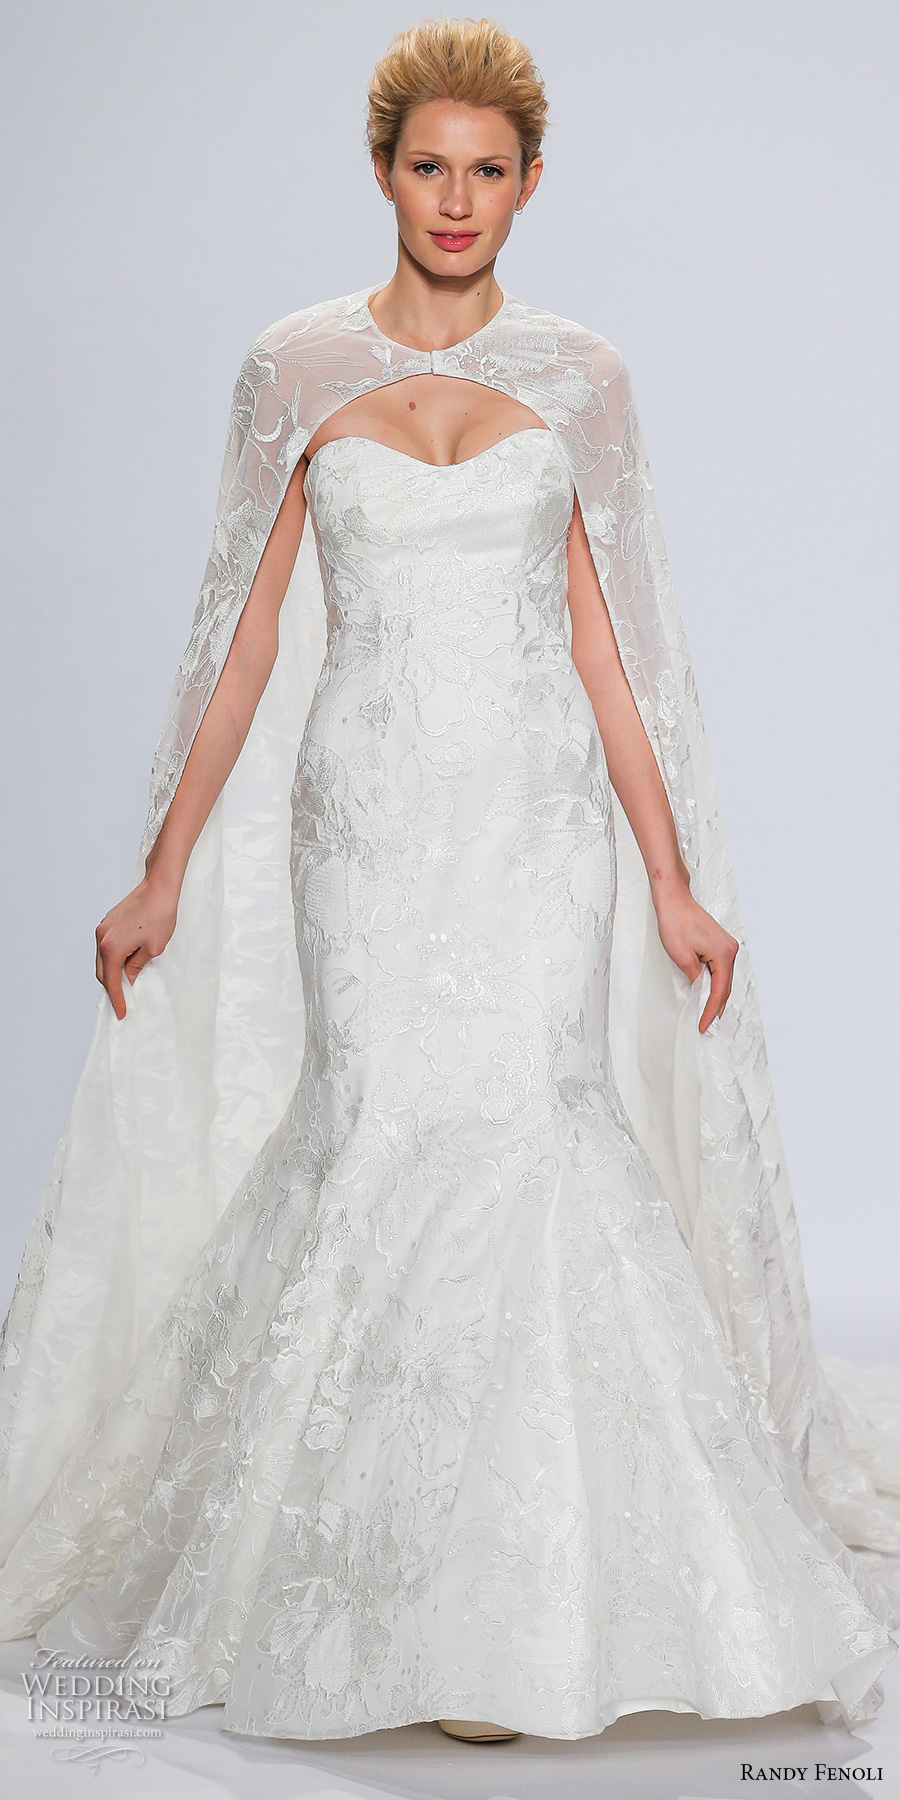 Wedding dresses new york 2018 wedding dresses in redlands for Wedding dress boutiques in nyc